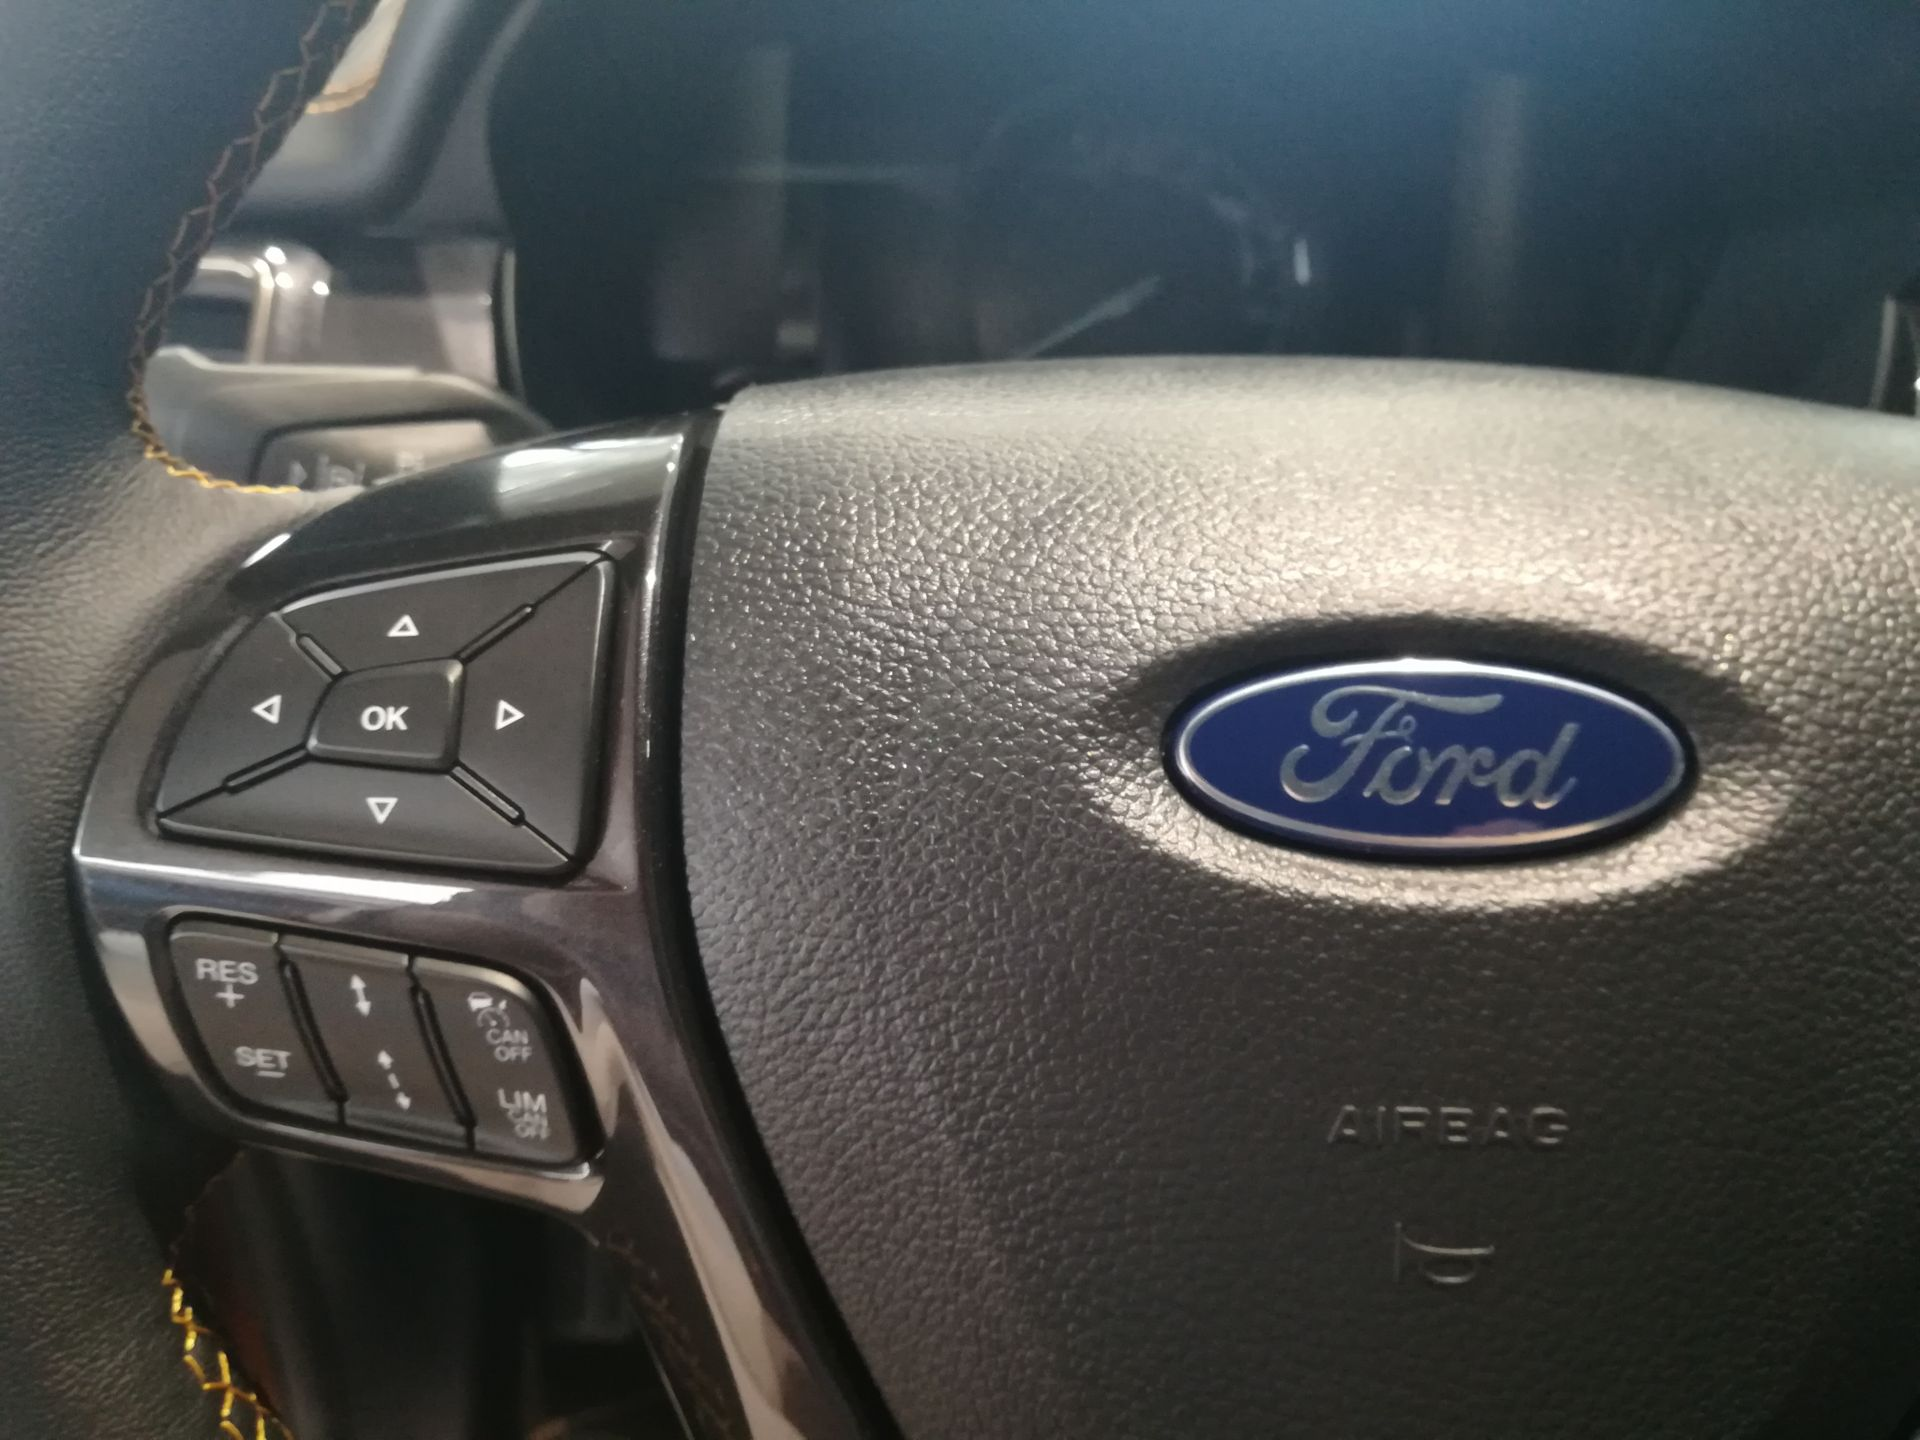 Ford Ranger 2.0 TDCi 157kW 4x4 Sup Cab Wildtrack AT